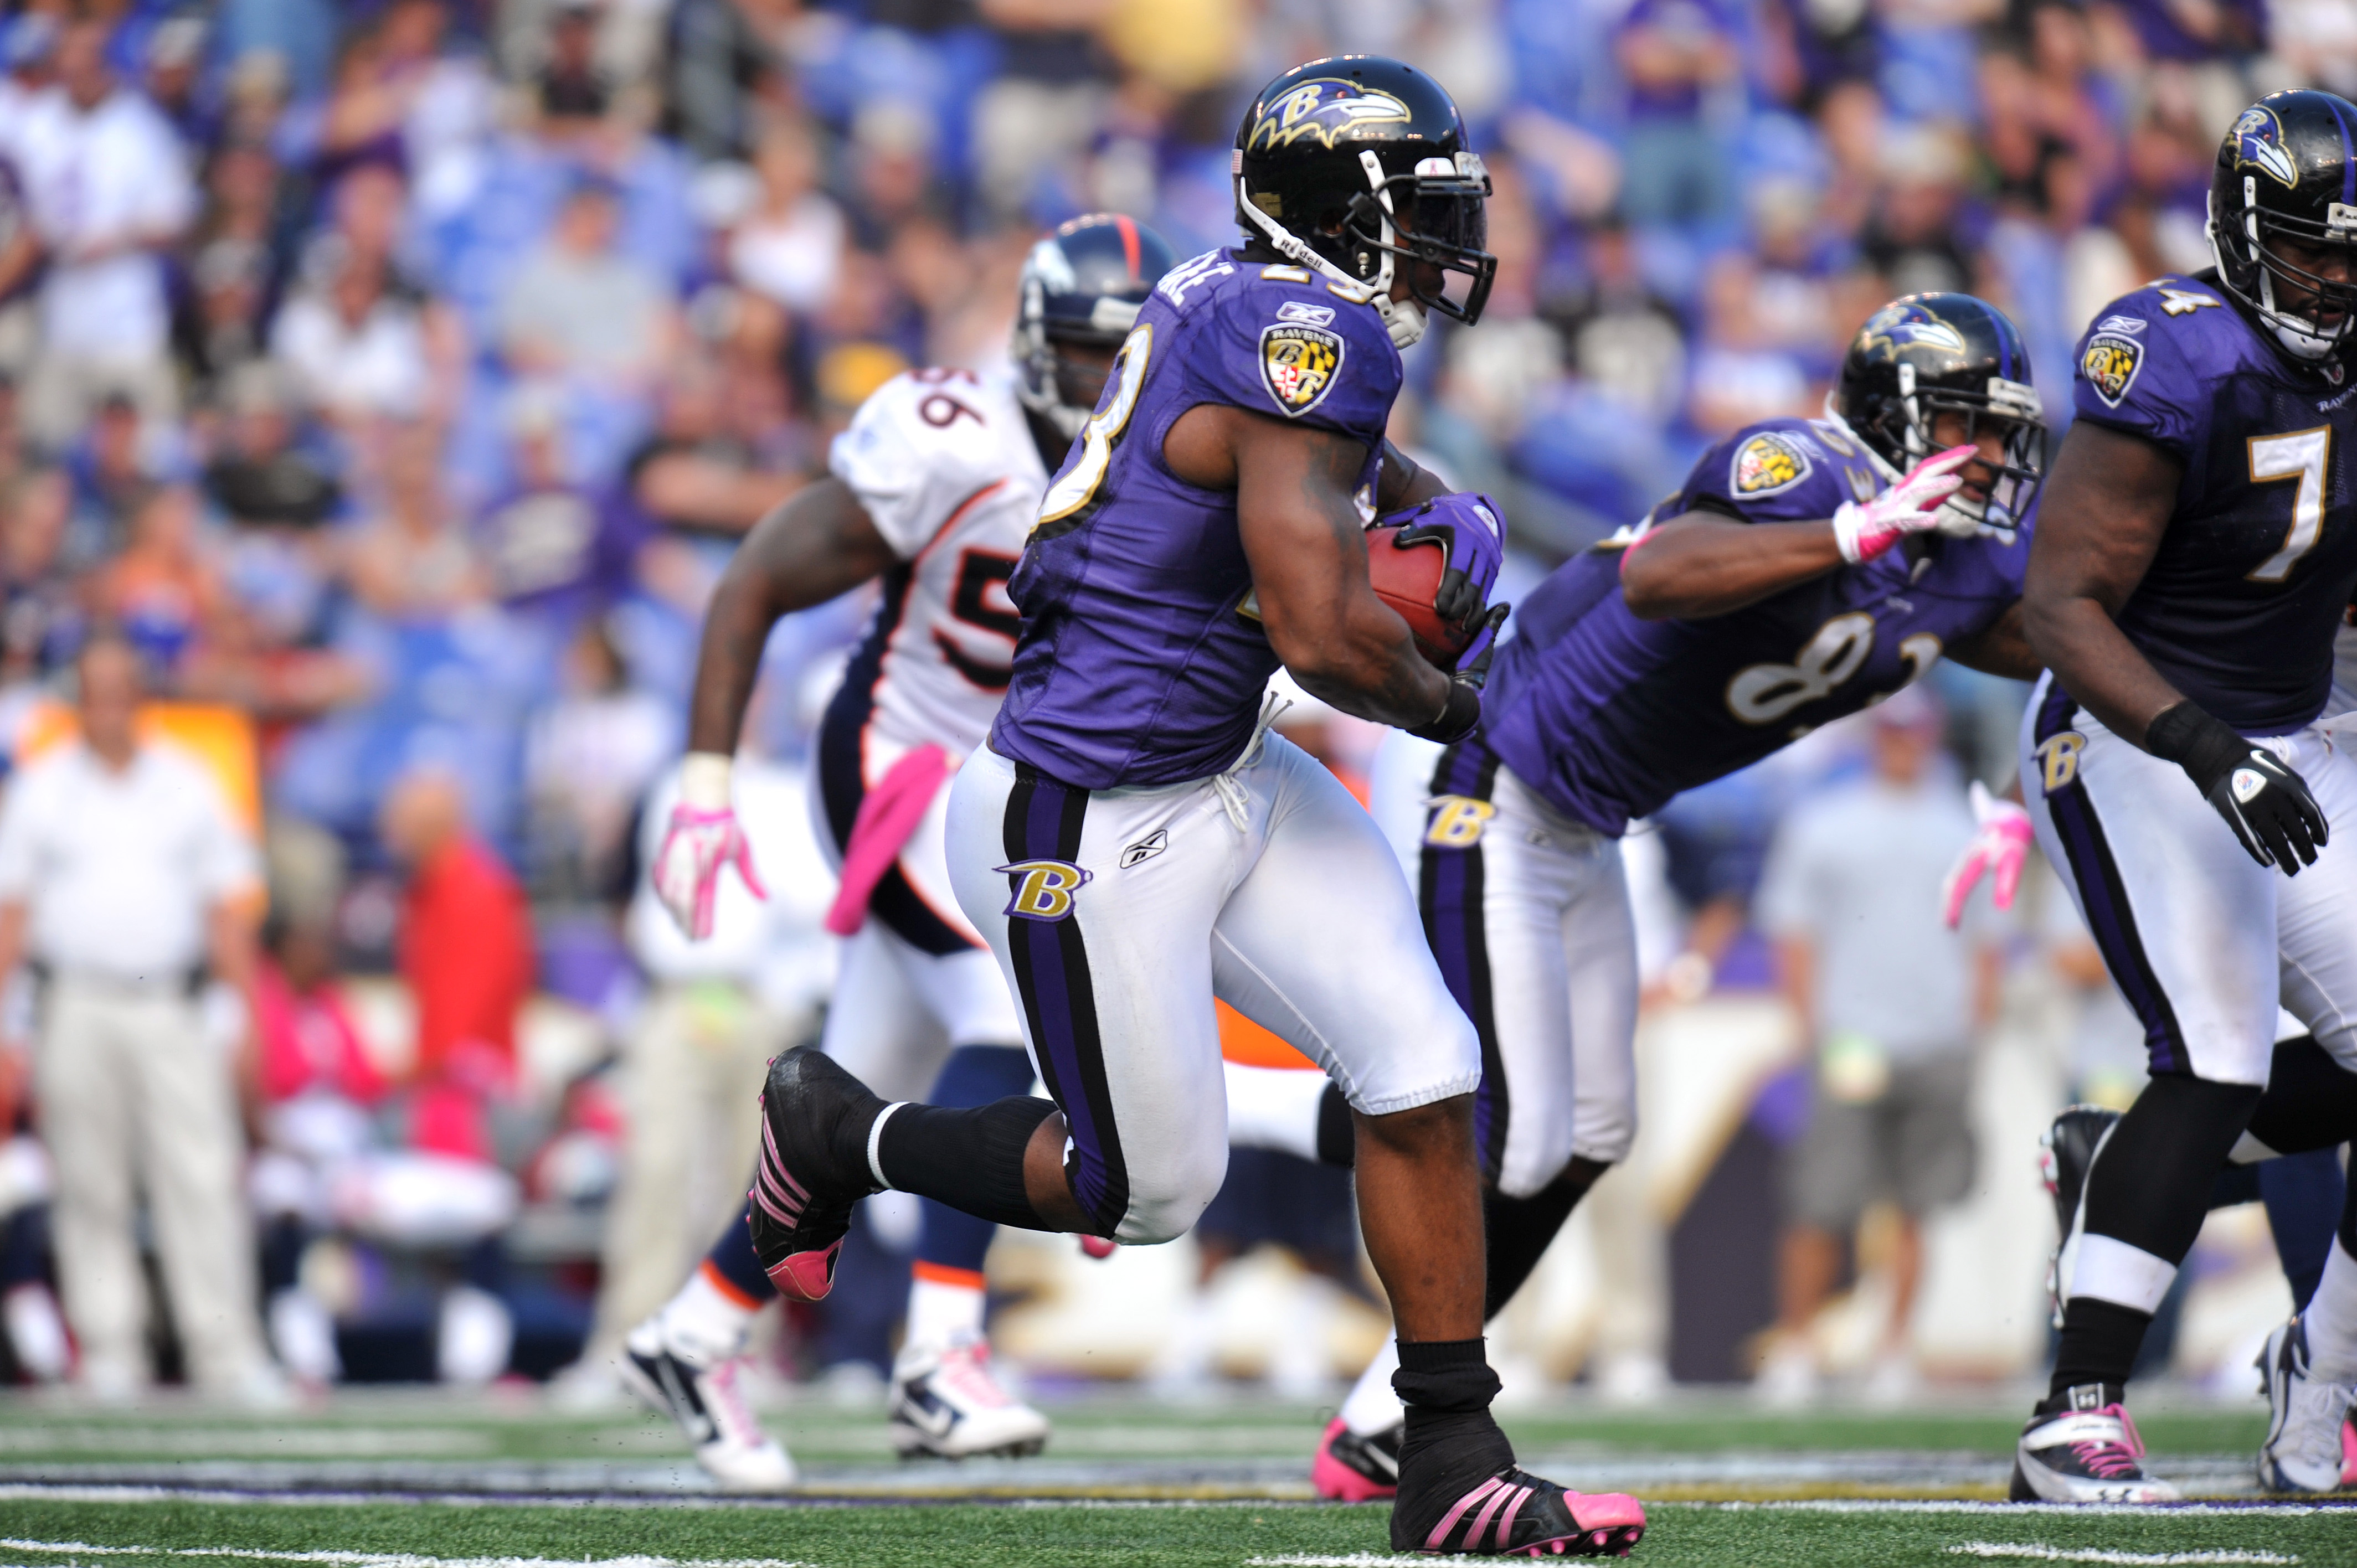 BALTIMORE, MD - OCTOBER 10:  Willis McGahee #23 of the Baltimore Ravens runs the ball against the Denver Broncos at M&T Bank Stadium on October 10, 2010 in Baltimore, Maryland. Players wore pink in recognition of Breast Cancer Awareness Month. The Ravens